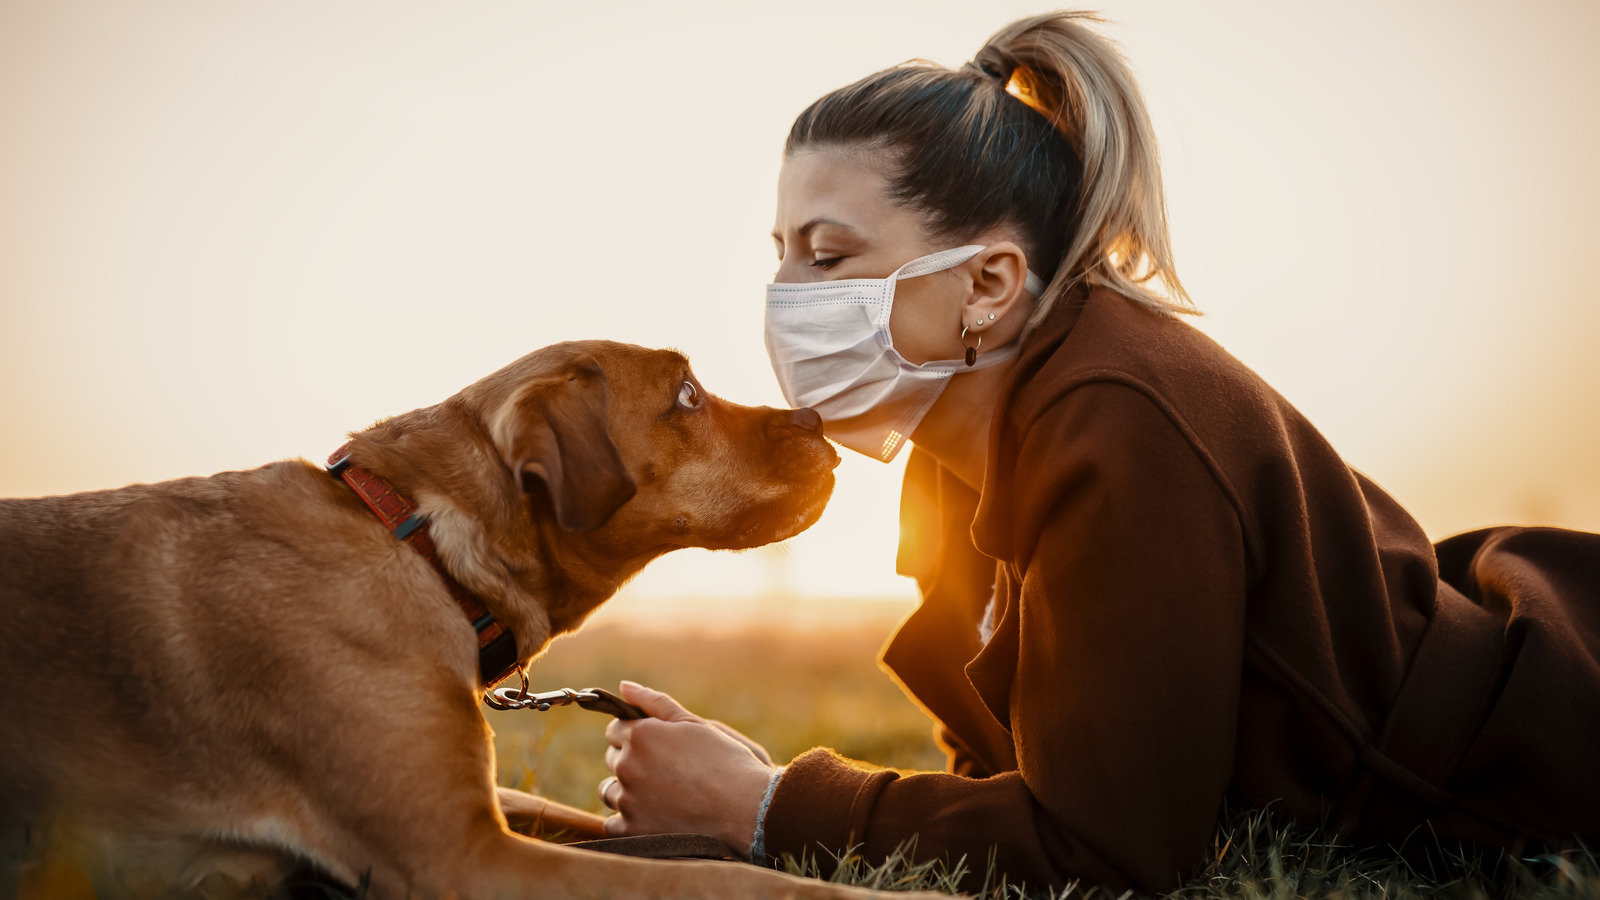 The Truth About Caring For Your Pets If You Have COVID-19